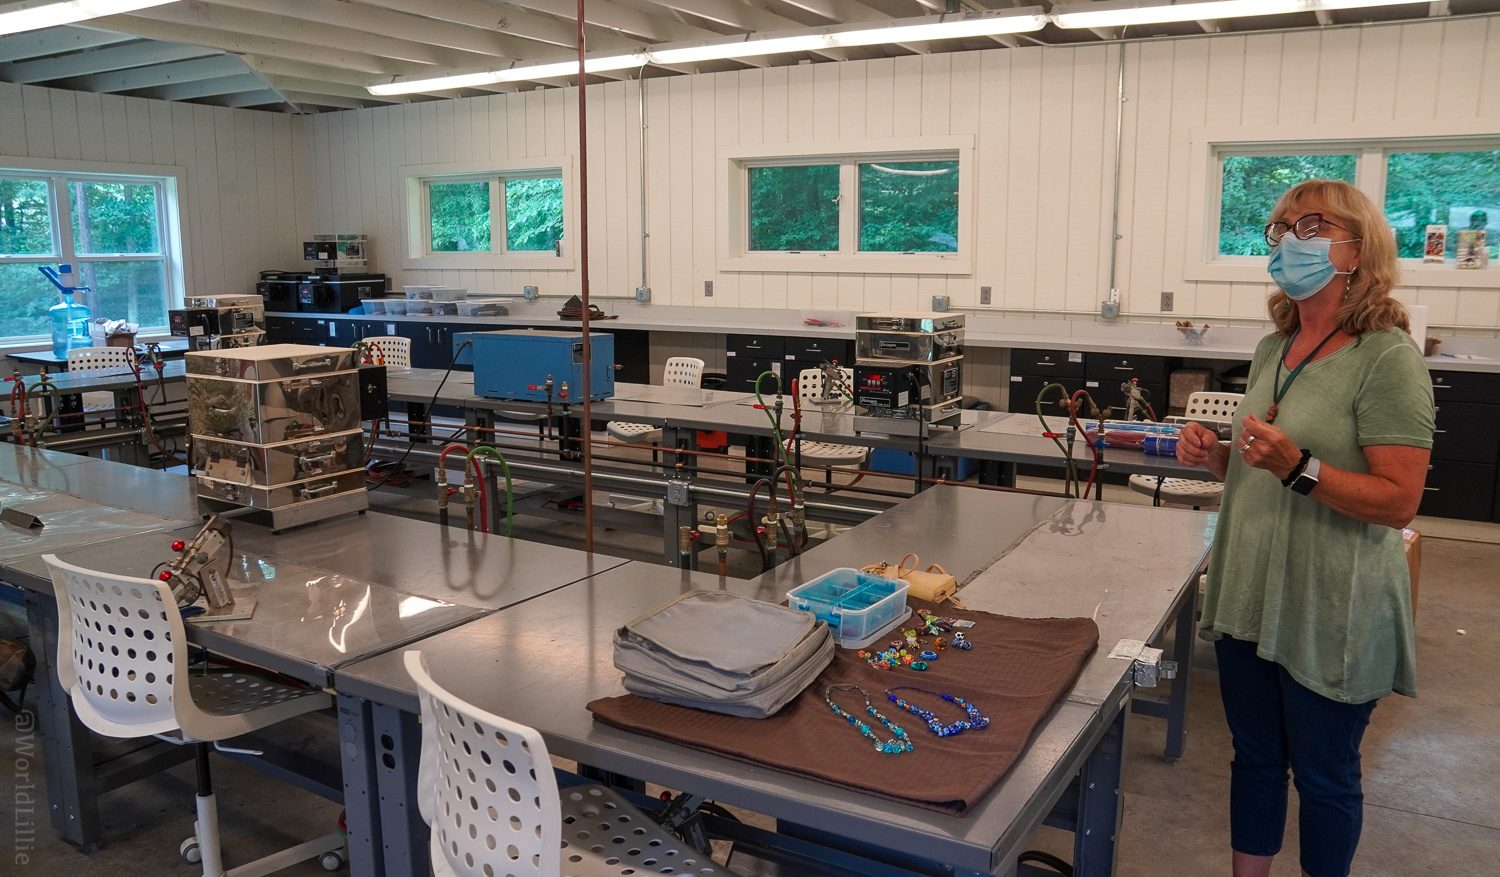 What a great glass making studio!